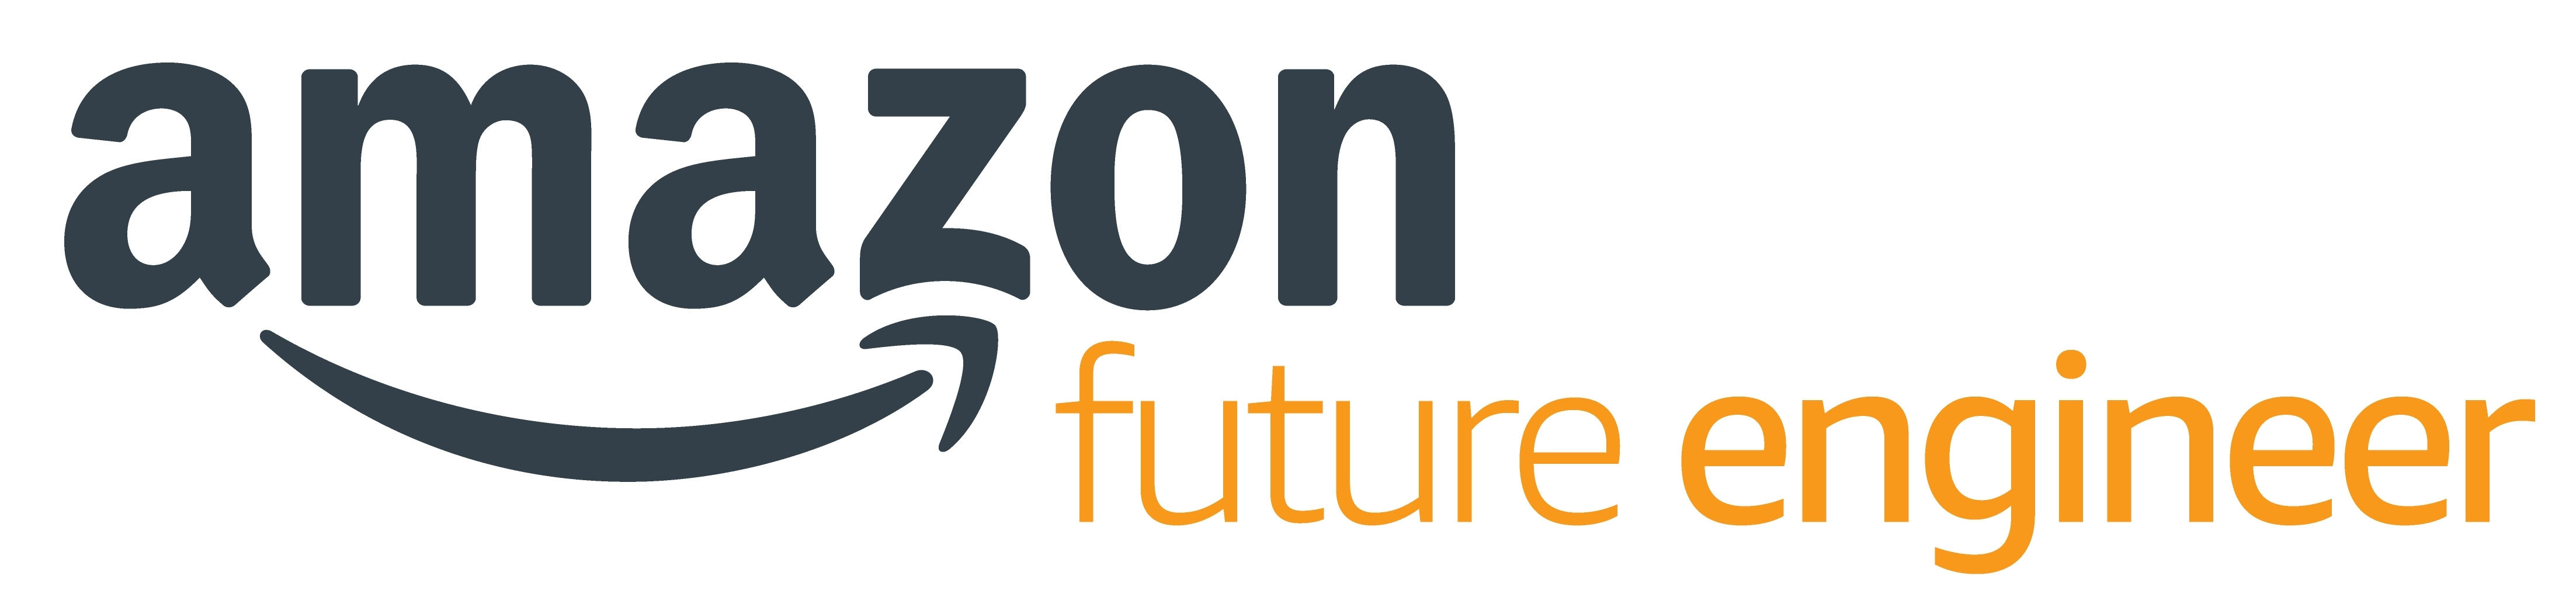 """Amazon Launches Childhood-to-Career Program """"Amazon Future Engineer"""" to  Inspire and Empower Underprivileged Youth to Build Careers in Computer  Science 